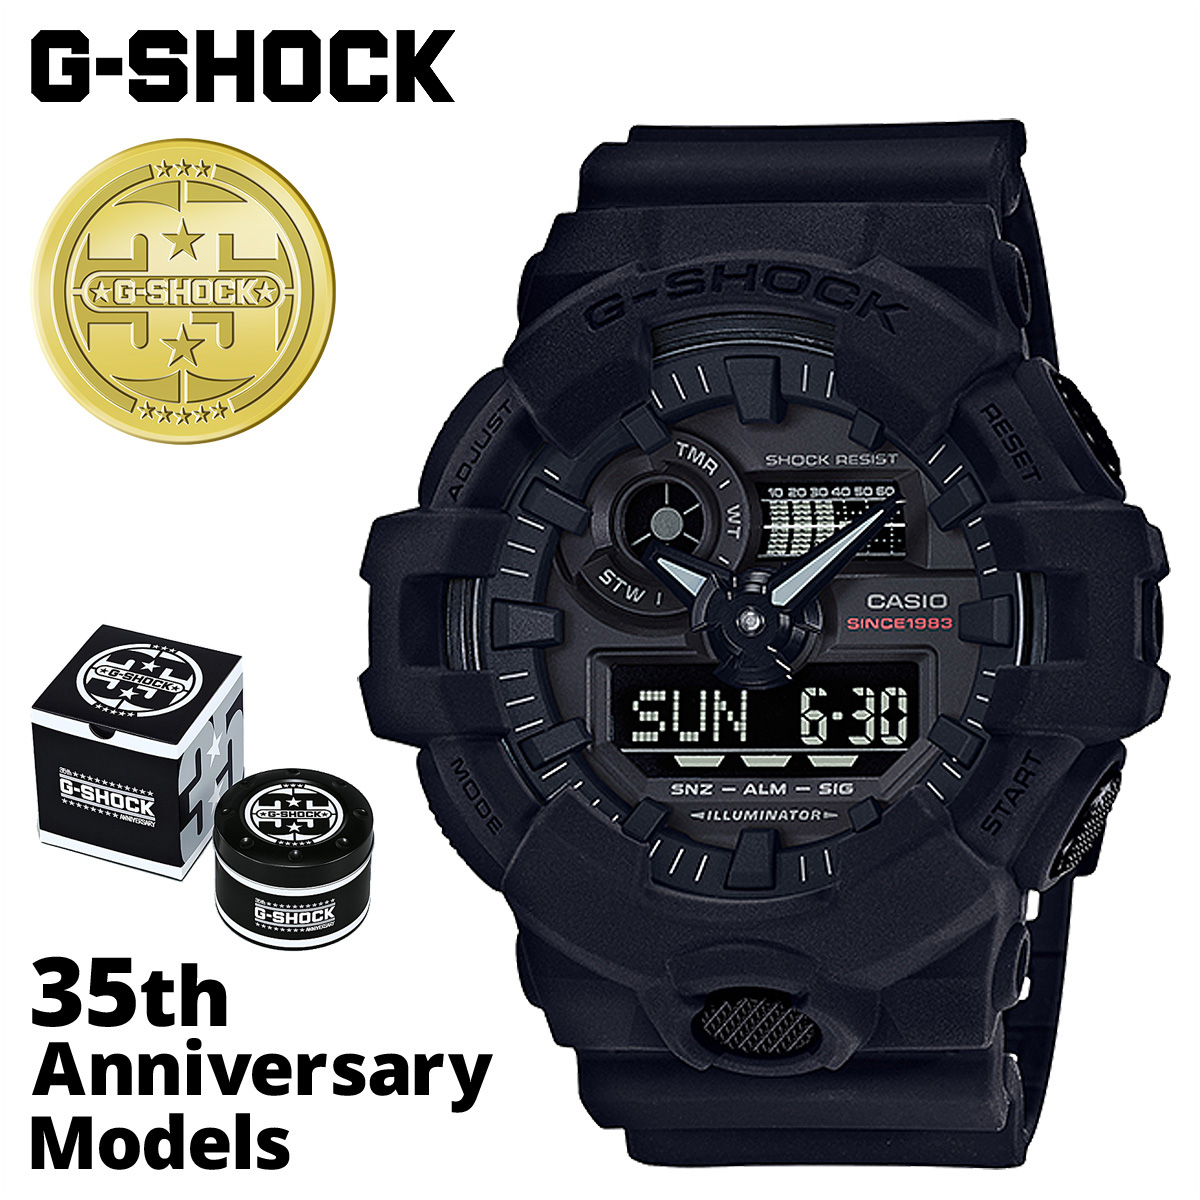 f9551b0e5e9 G shock G-Shock G- shock black black men gap Dis of the 35th anniversary of  CASIO Casio G-SHOCK watch GA-735A-1AJR BIG BANG BLACK